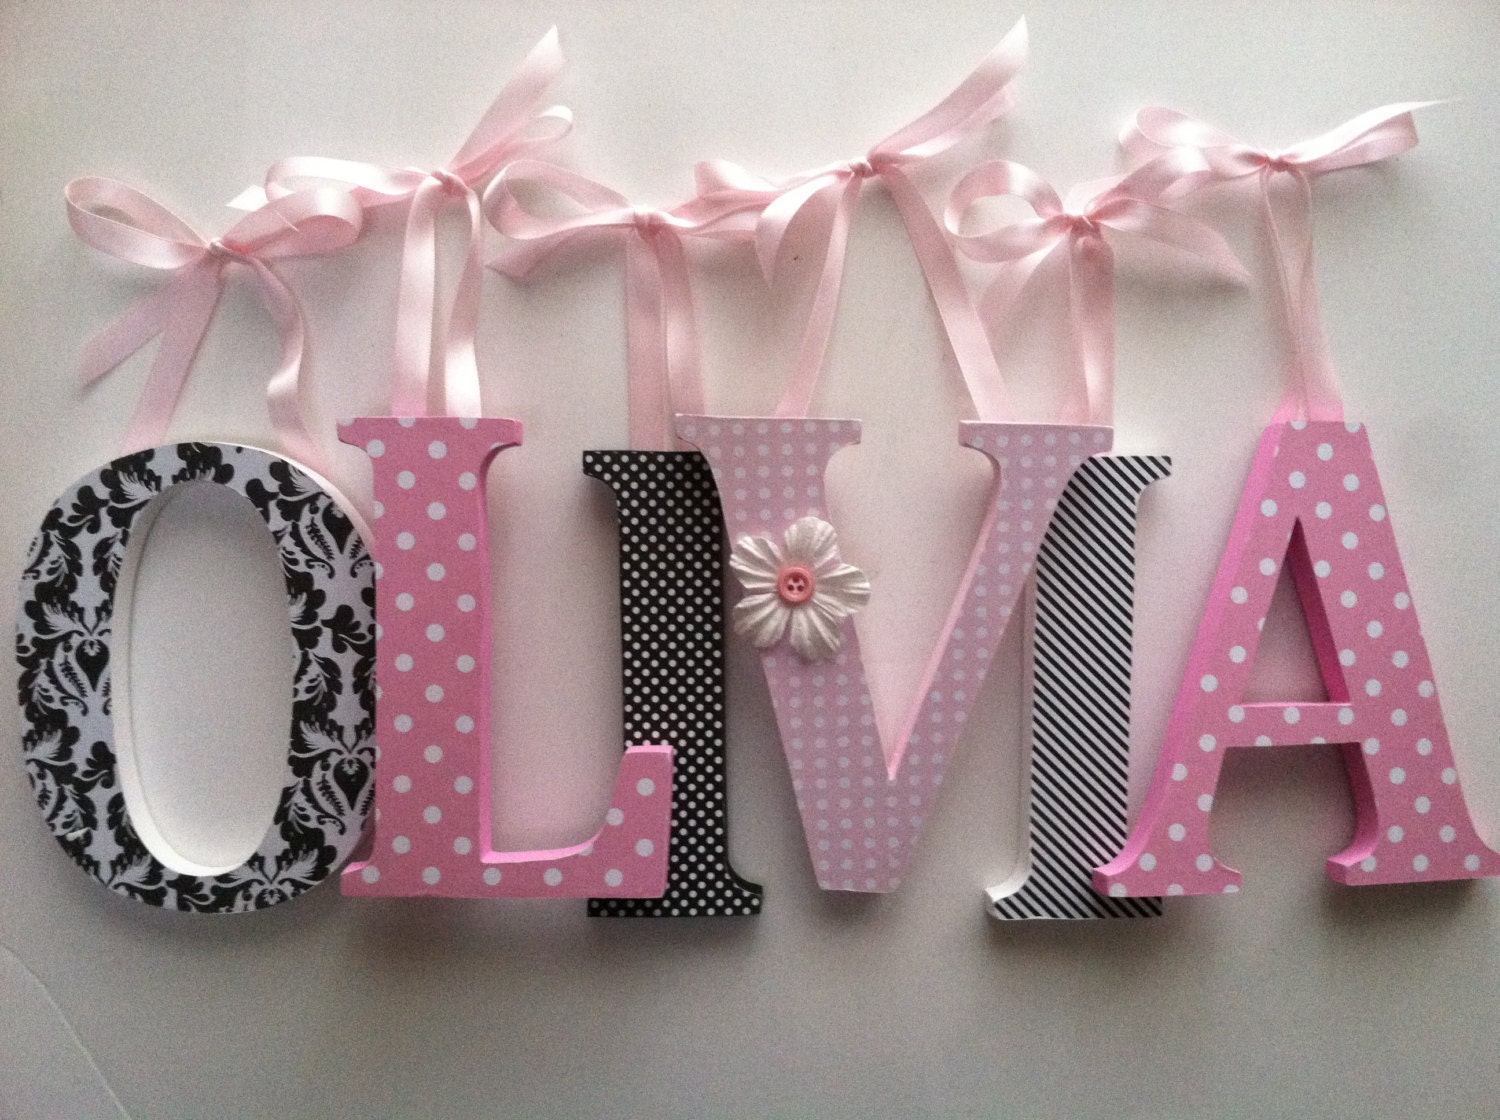 Wooden Letters For Nursery In Pink And Black